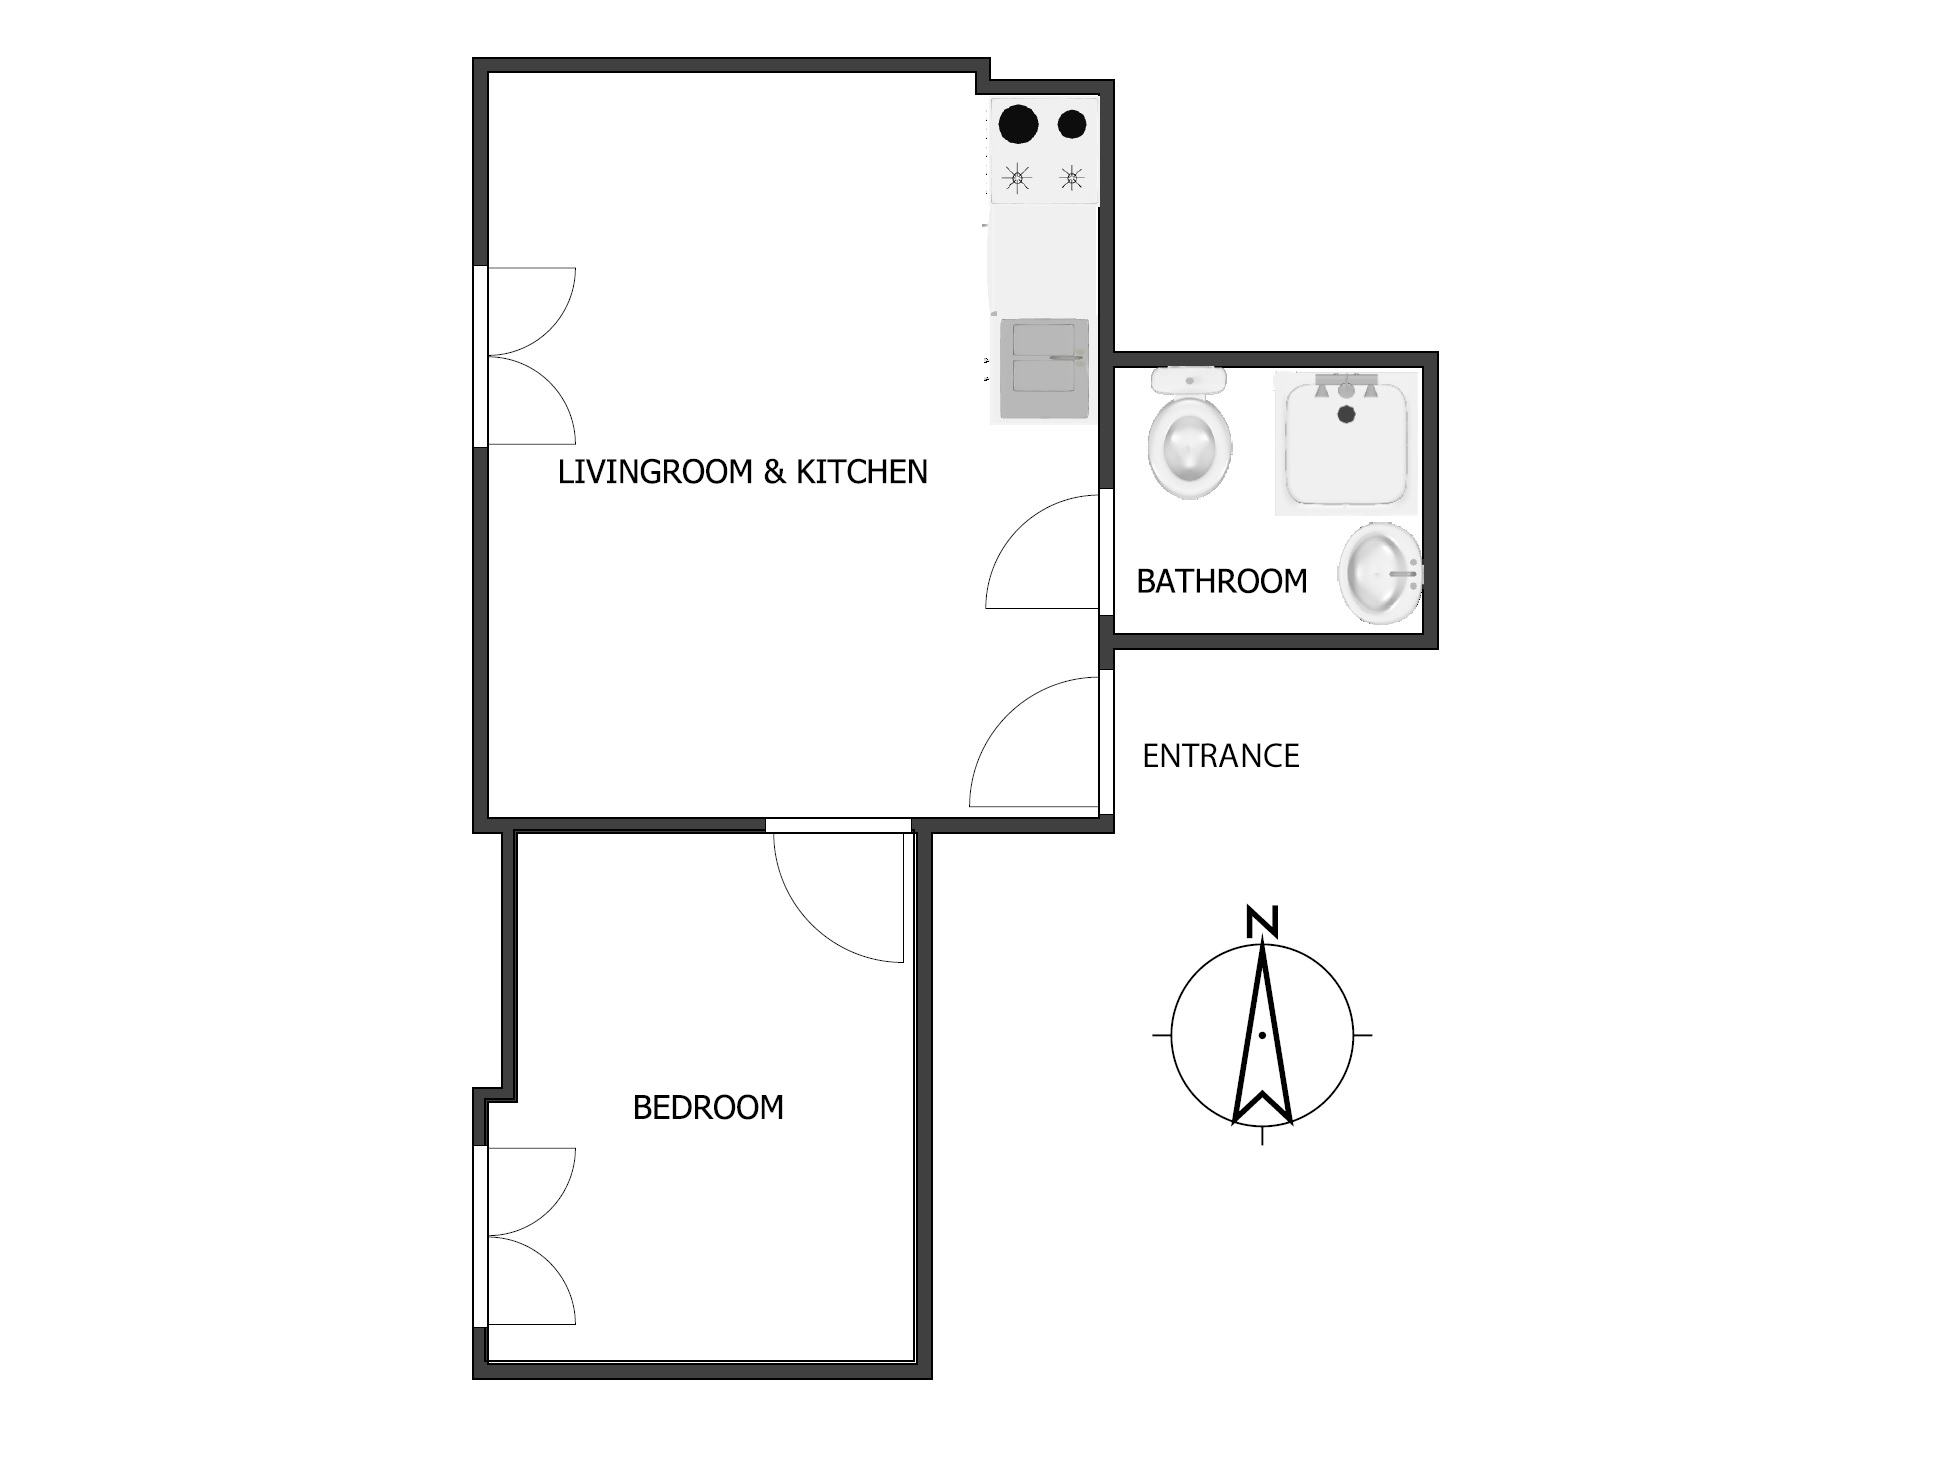 http://mysofiaapartments.com/wp-content/uploads/2015/10/3A5-FloorPlanOneBedroom2.jpg